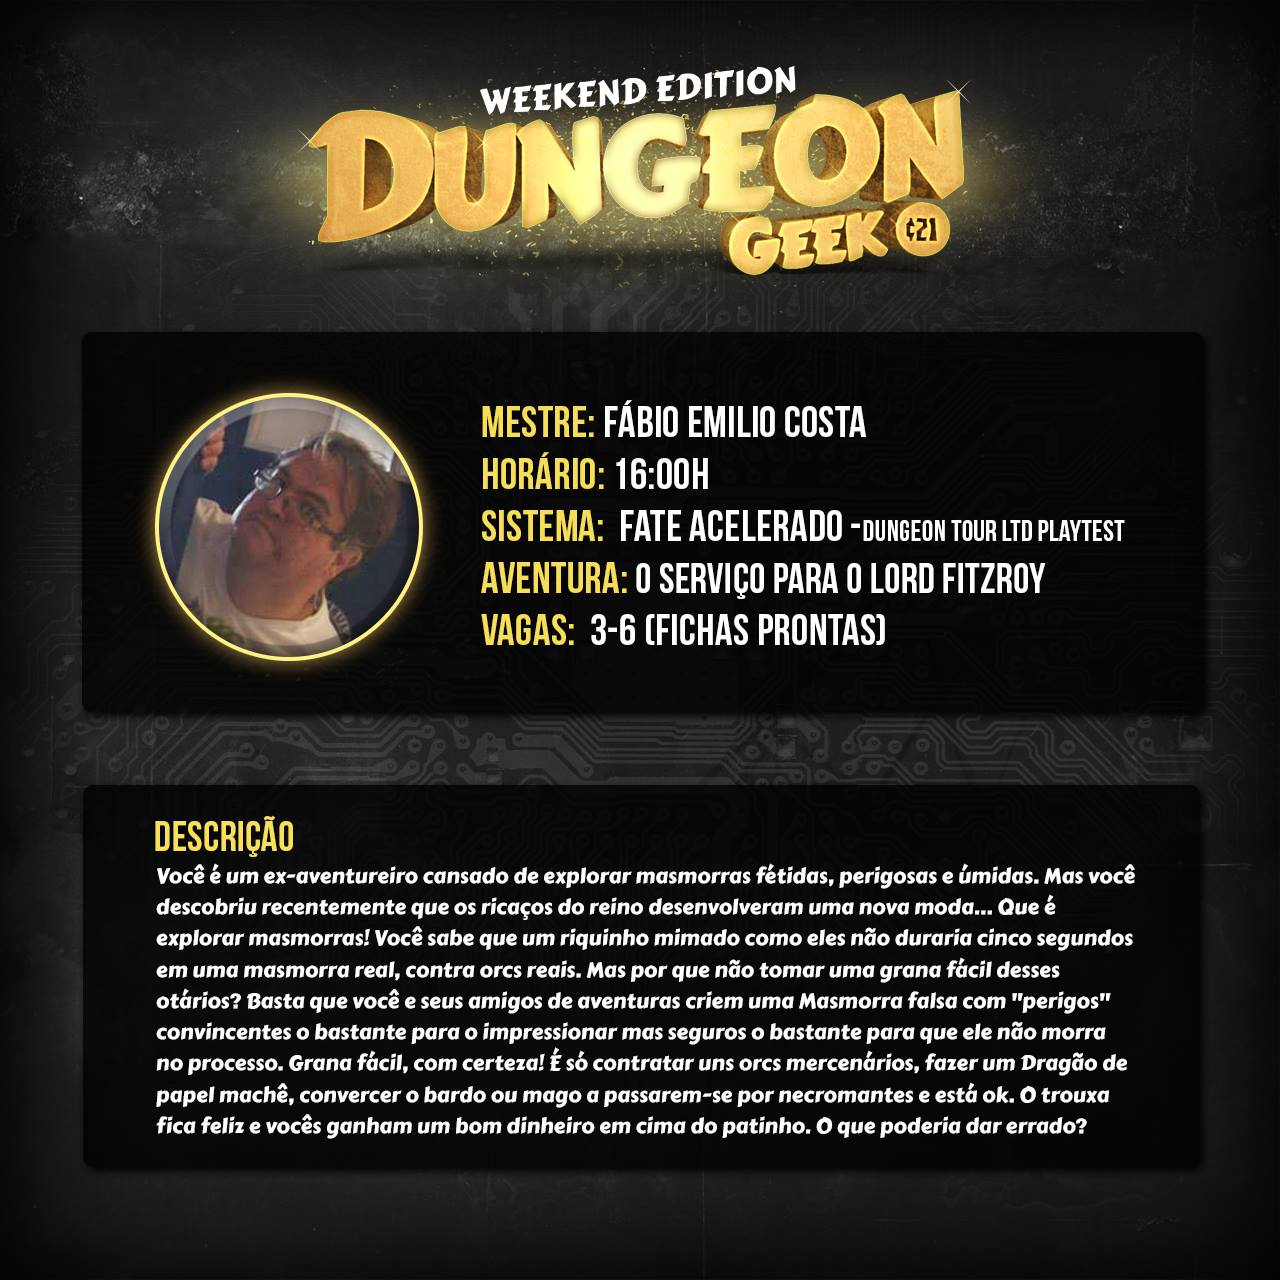 The Image Divulgation for _Dungeon Geek Weekend_ (in Portuguese)